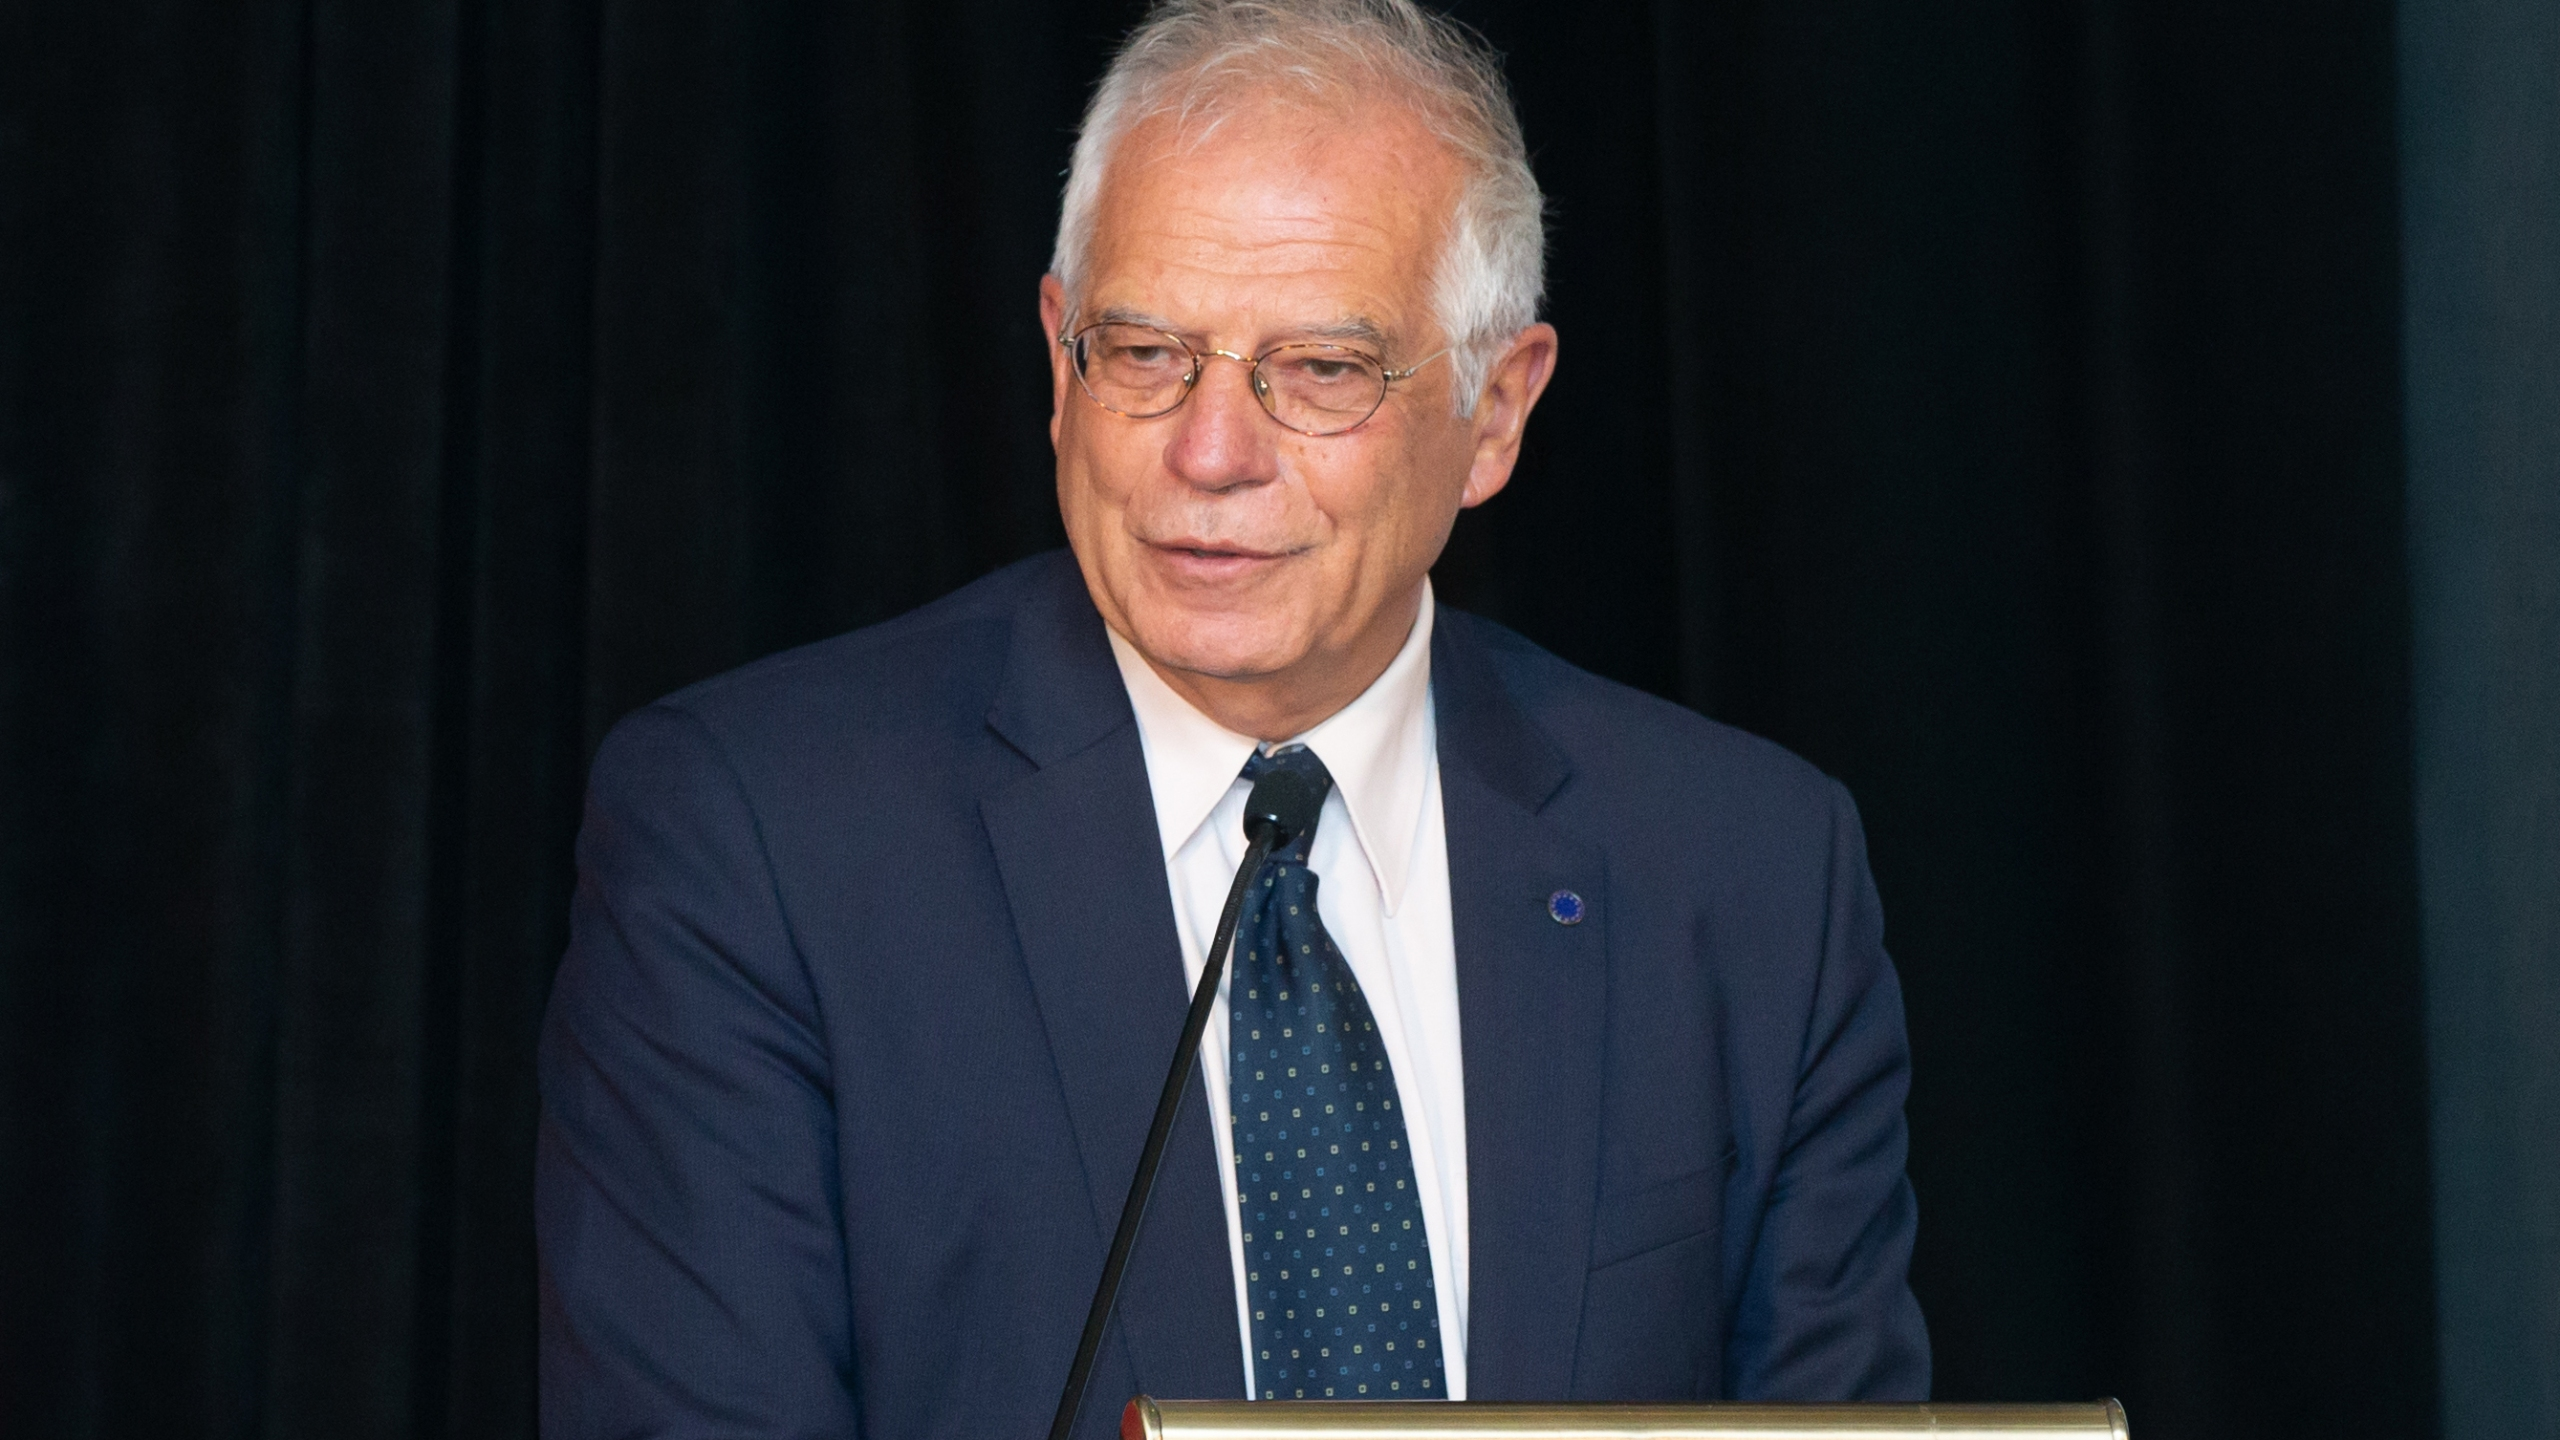 Spain's Minister of Foreign Affairs Josep Borrell addresses the Carolina Foundation Hispanic Leaders Summit at the Hyatt Regency Hotel on June 18, 2018 in San Antonio, Texas. (Credit: Suzanne Cordeiro/AFP)